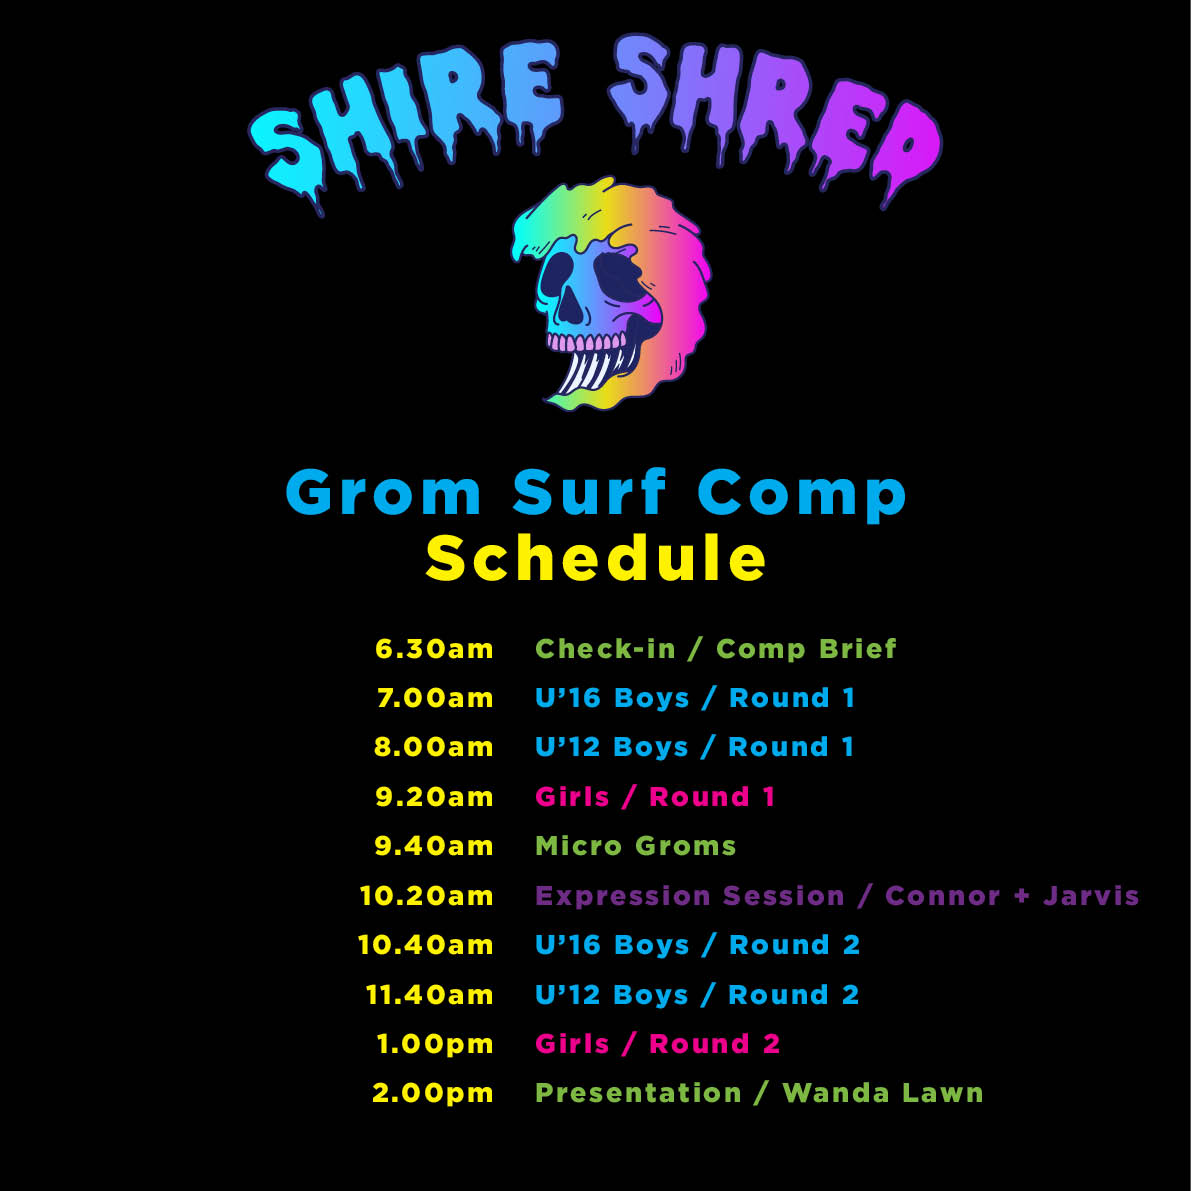 Shire Shred Comp Schedule